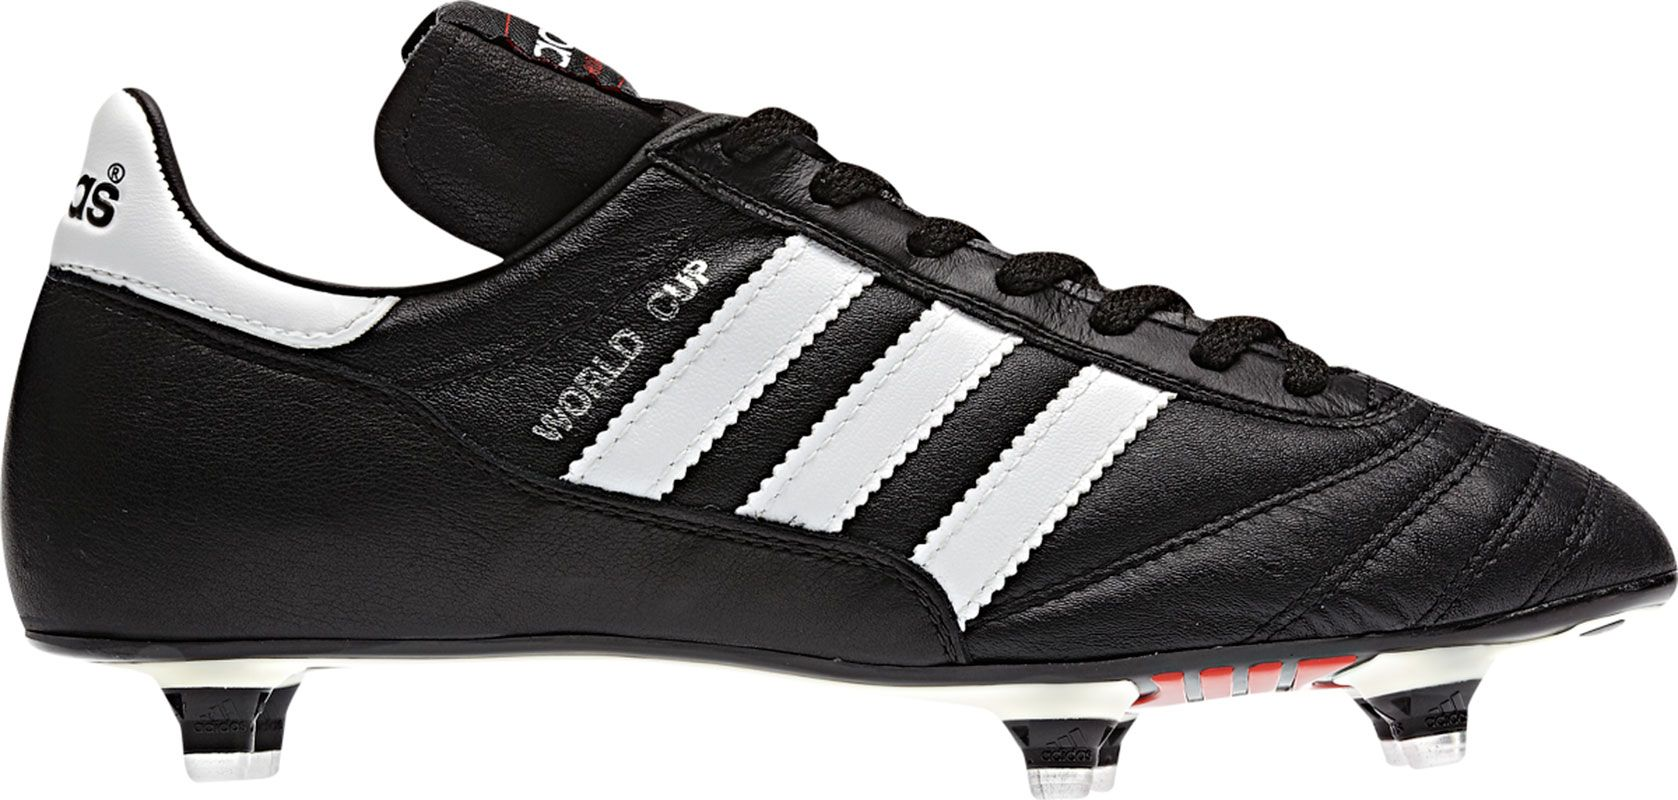 cfa21d0dc73 coupon code adidas world cup indoor soccer shoes 6ab56 b591c